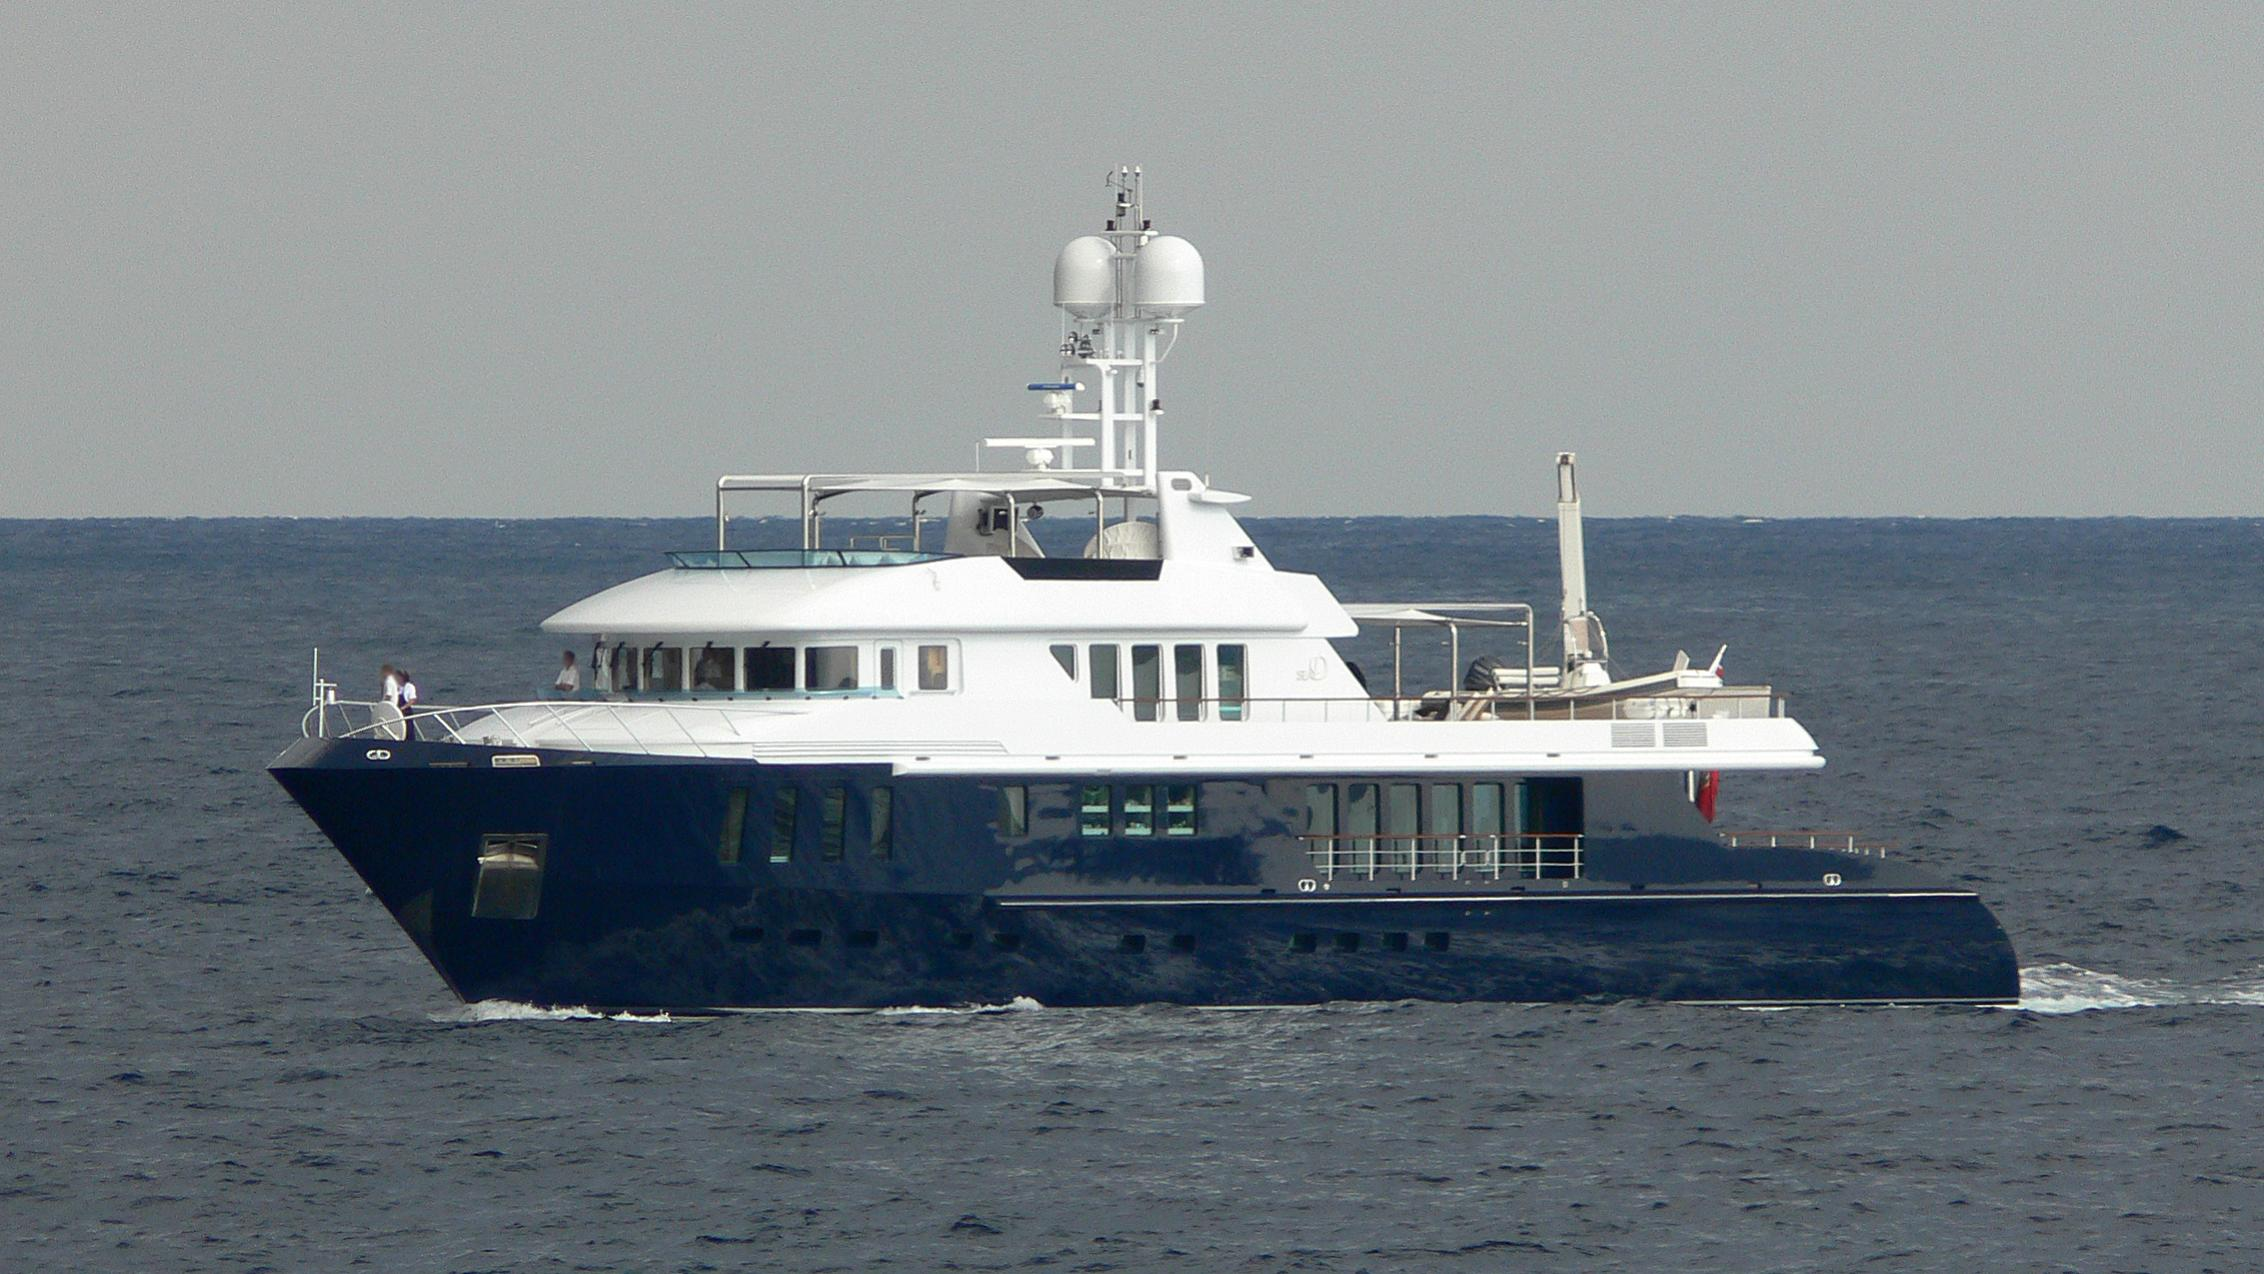 sea-d-motor-yacht-turquoise-2003-39m-profile